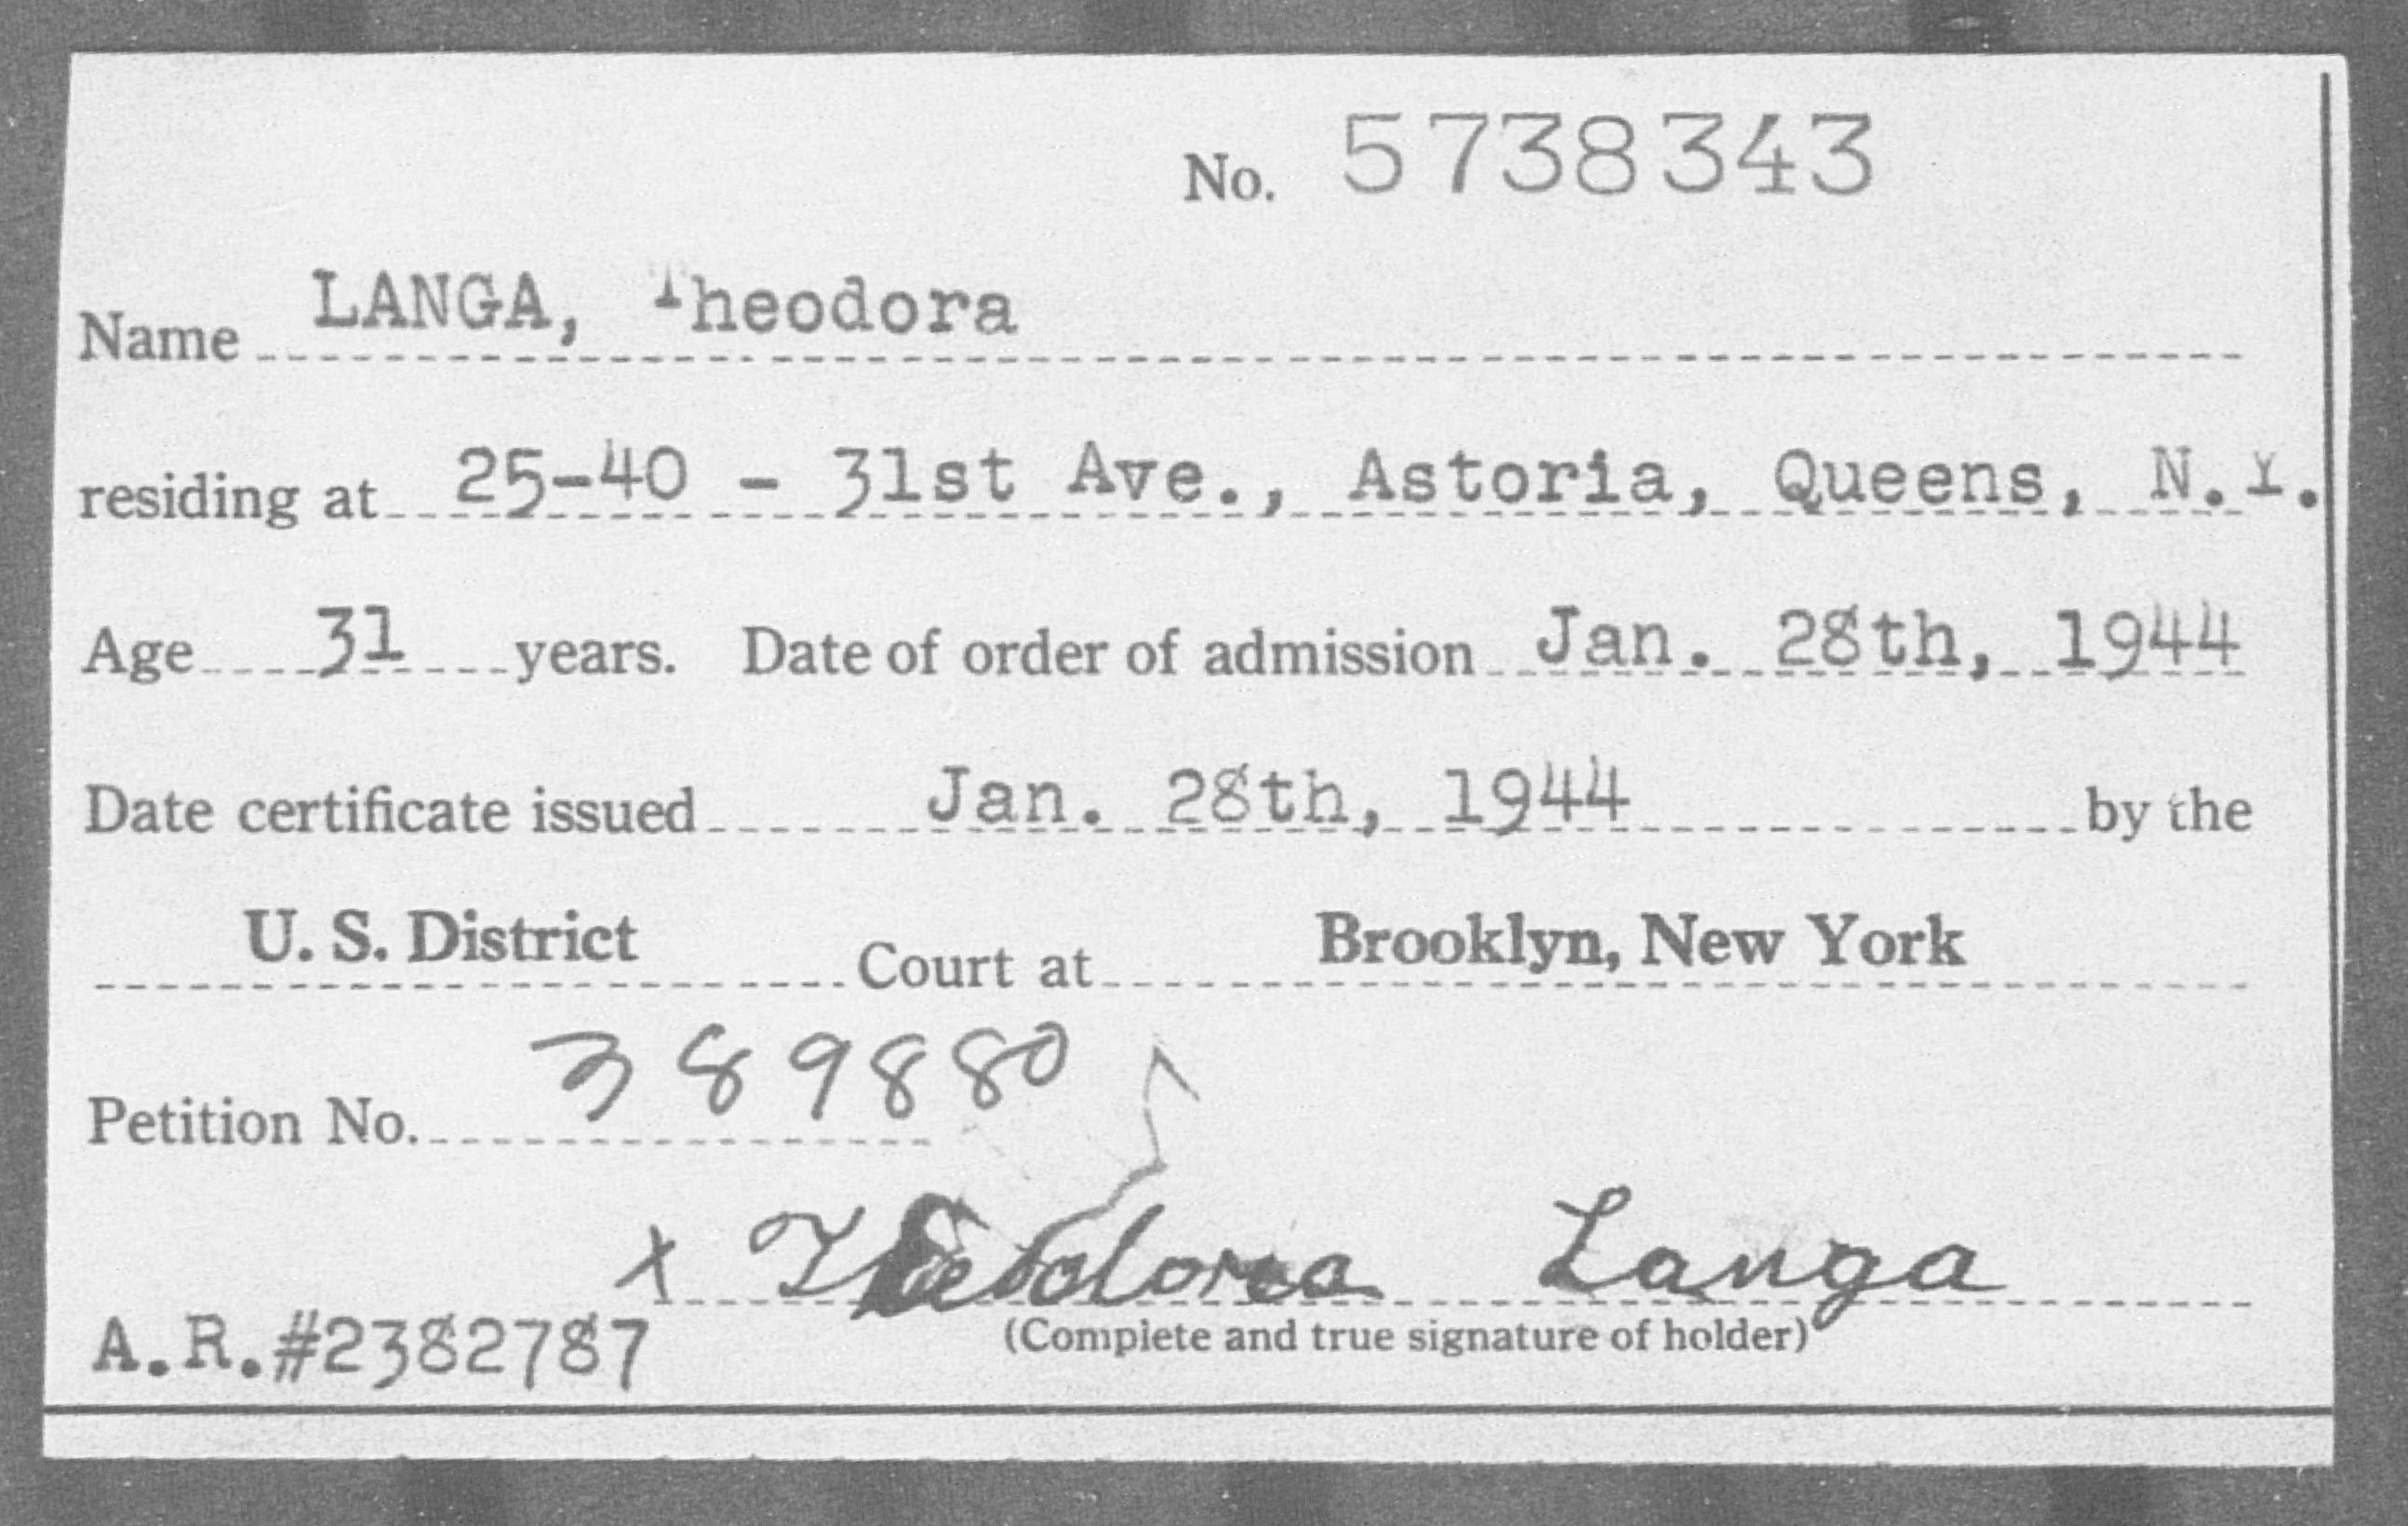 Langa, Theodora - Born: [BLANK], Naturalized: 1944